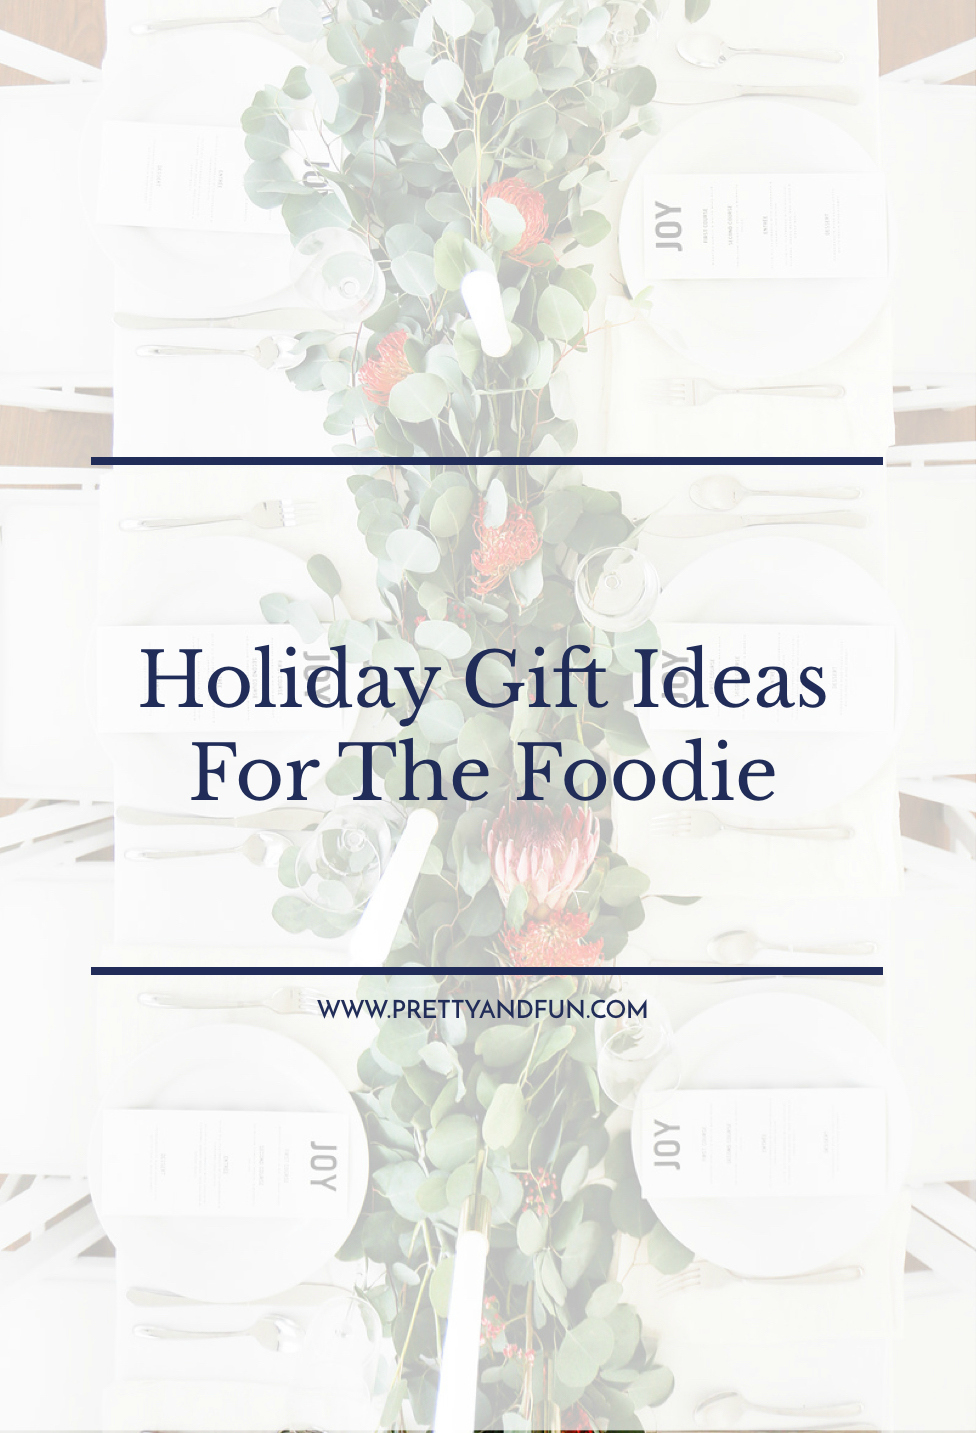 The Best Holiday Gift Ideas for the Foodie.